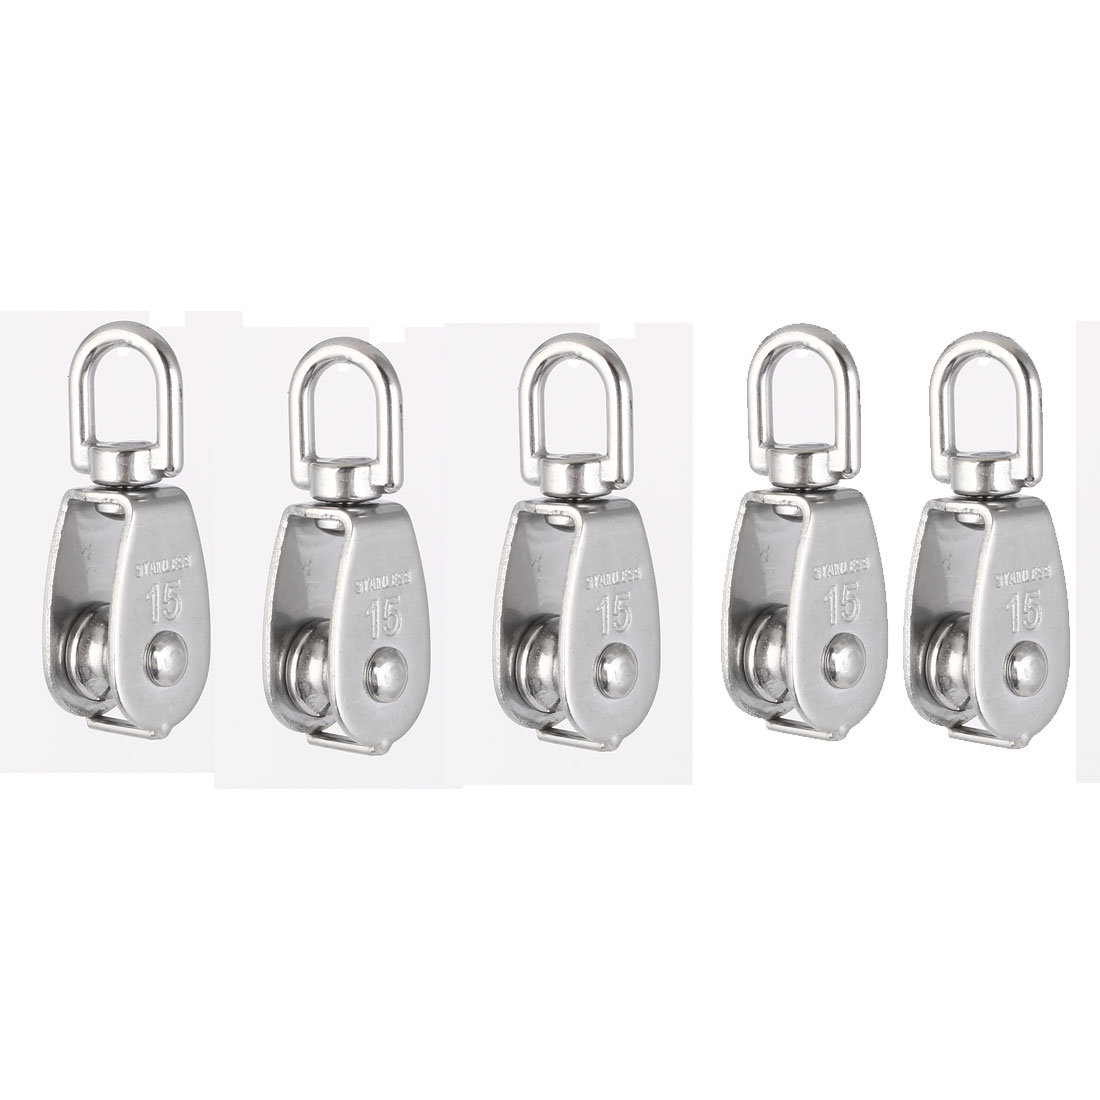 Uxcell M15 Lifting Crane Swivel Claw Single Pulley Block Hanging Wire Towing Wheel 5pcs